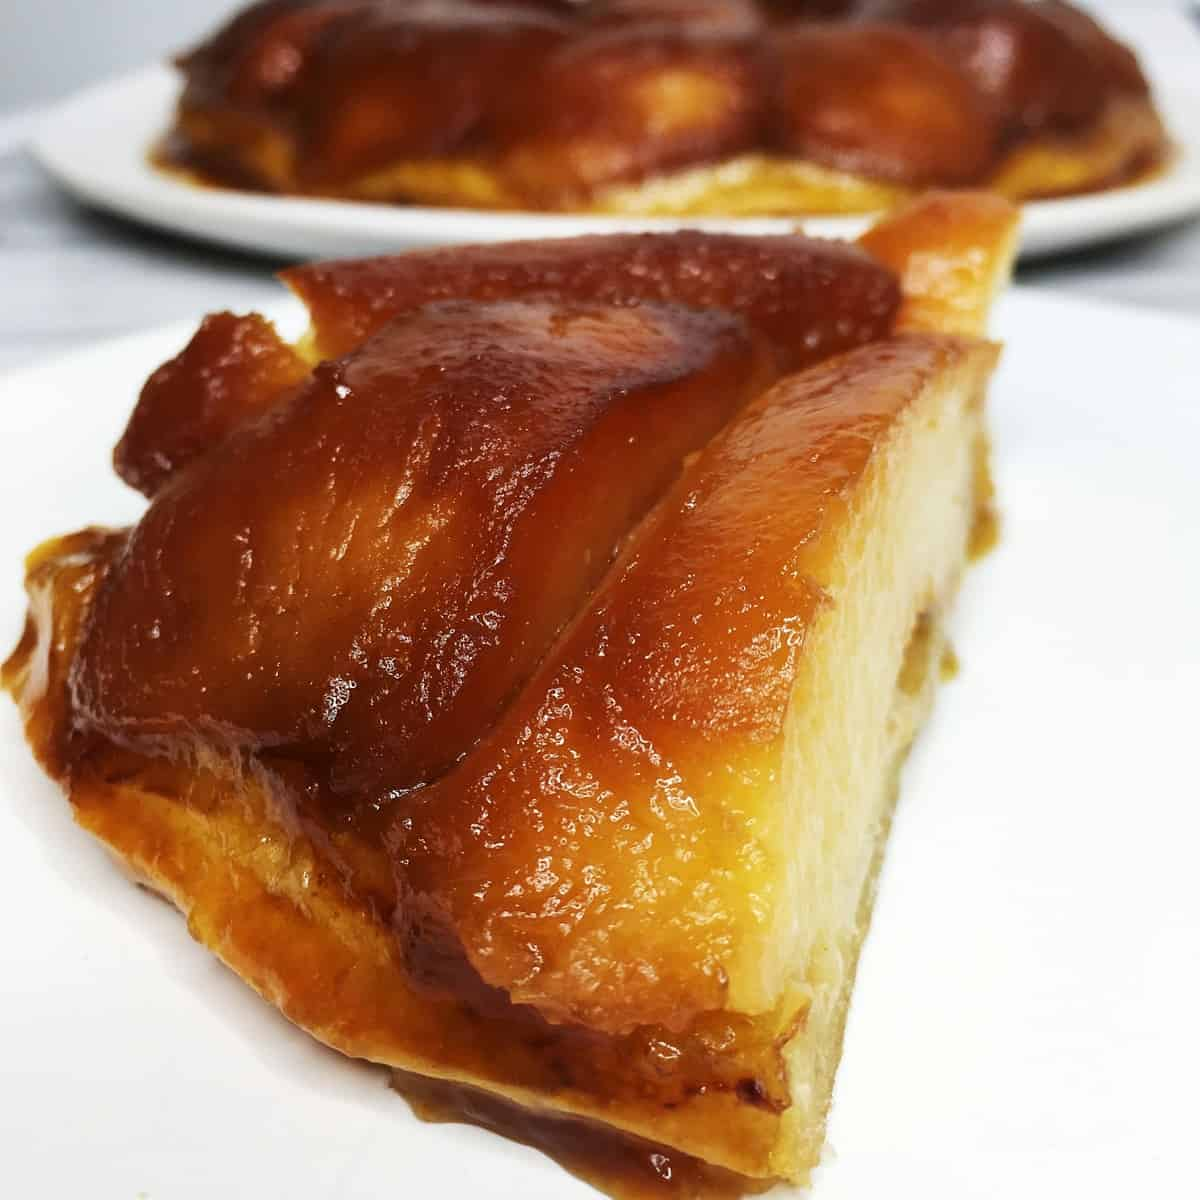 A slice of French Quince Tarte Tatin with the rest of the dessert on background